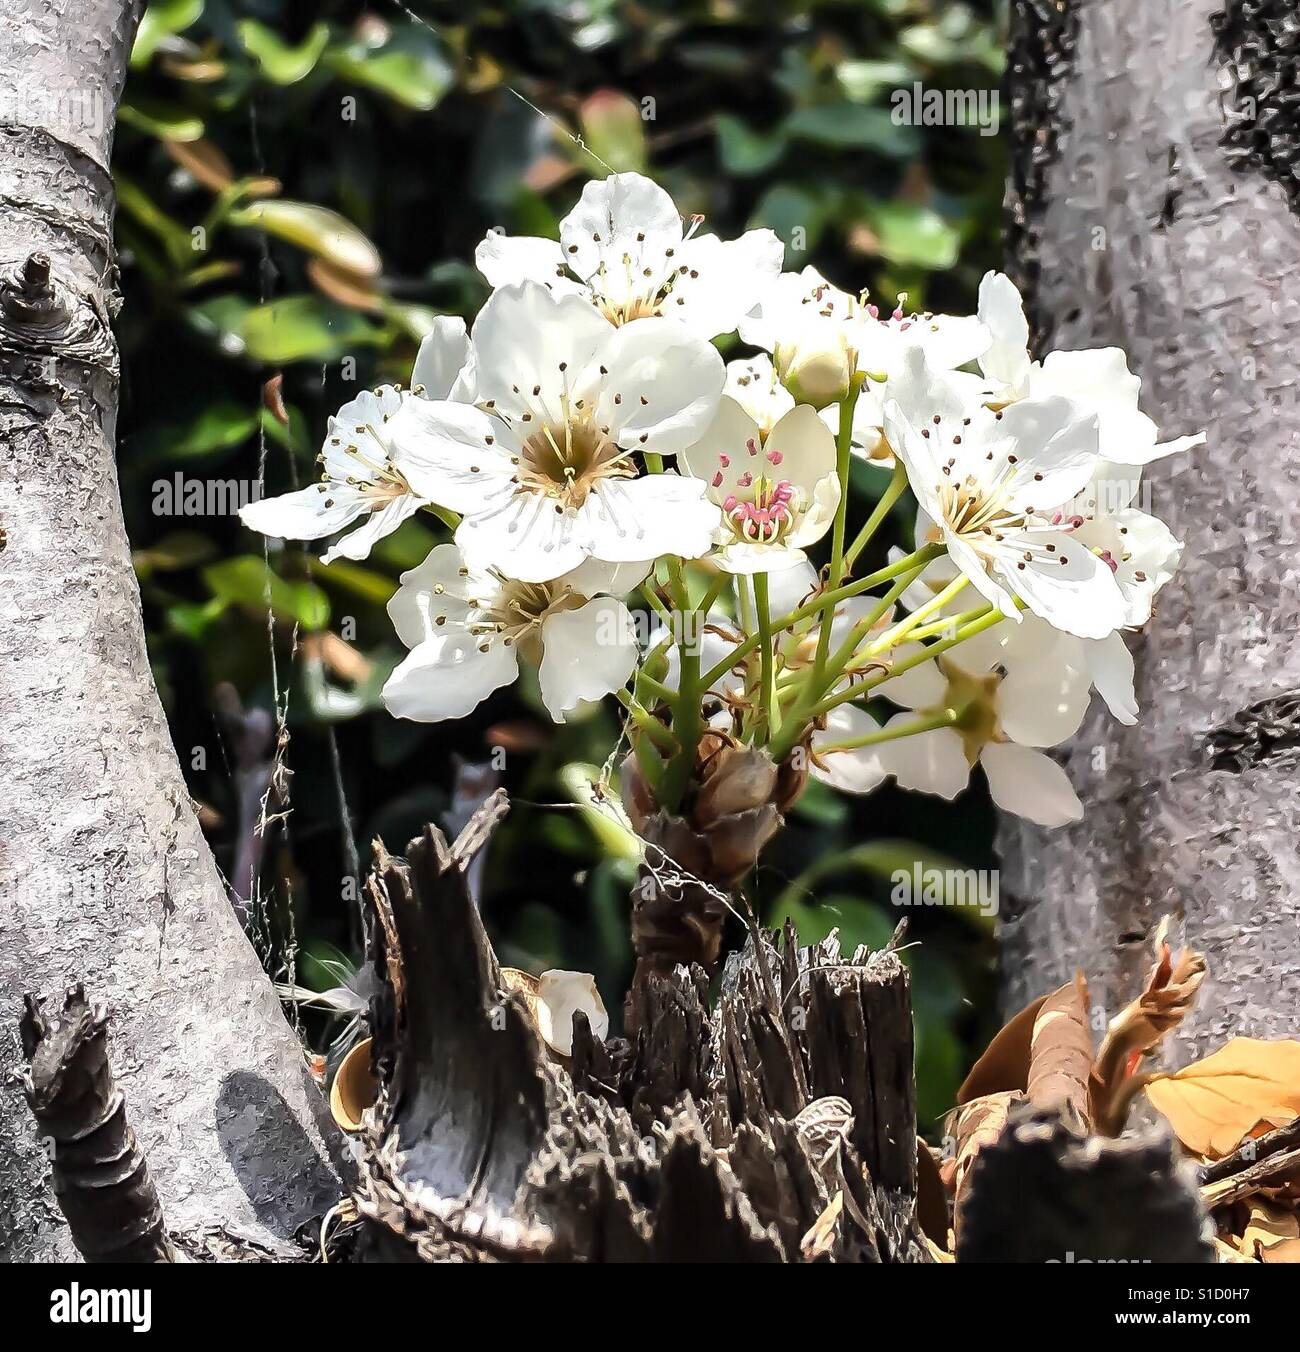 White flower blossoms on pear tree in spring sunlight closeup stock white flower blossoms on pear tree in spring sunlight closeup mightylinksfo